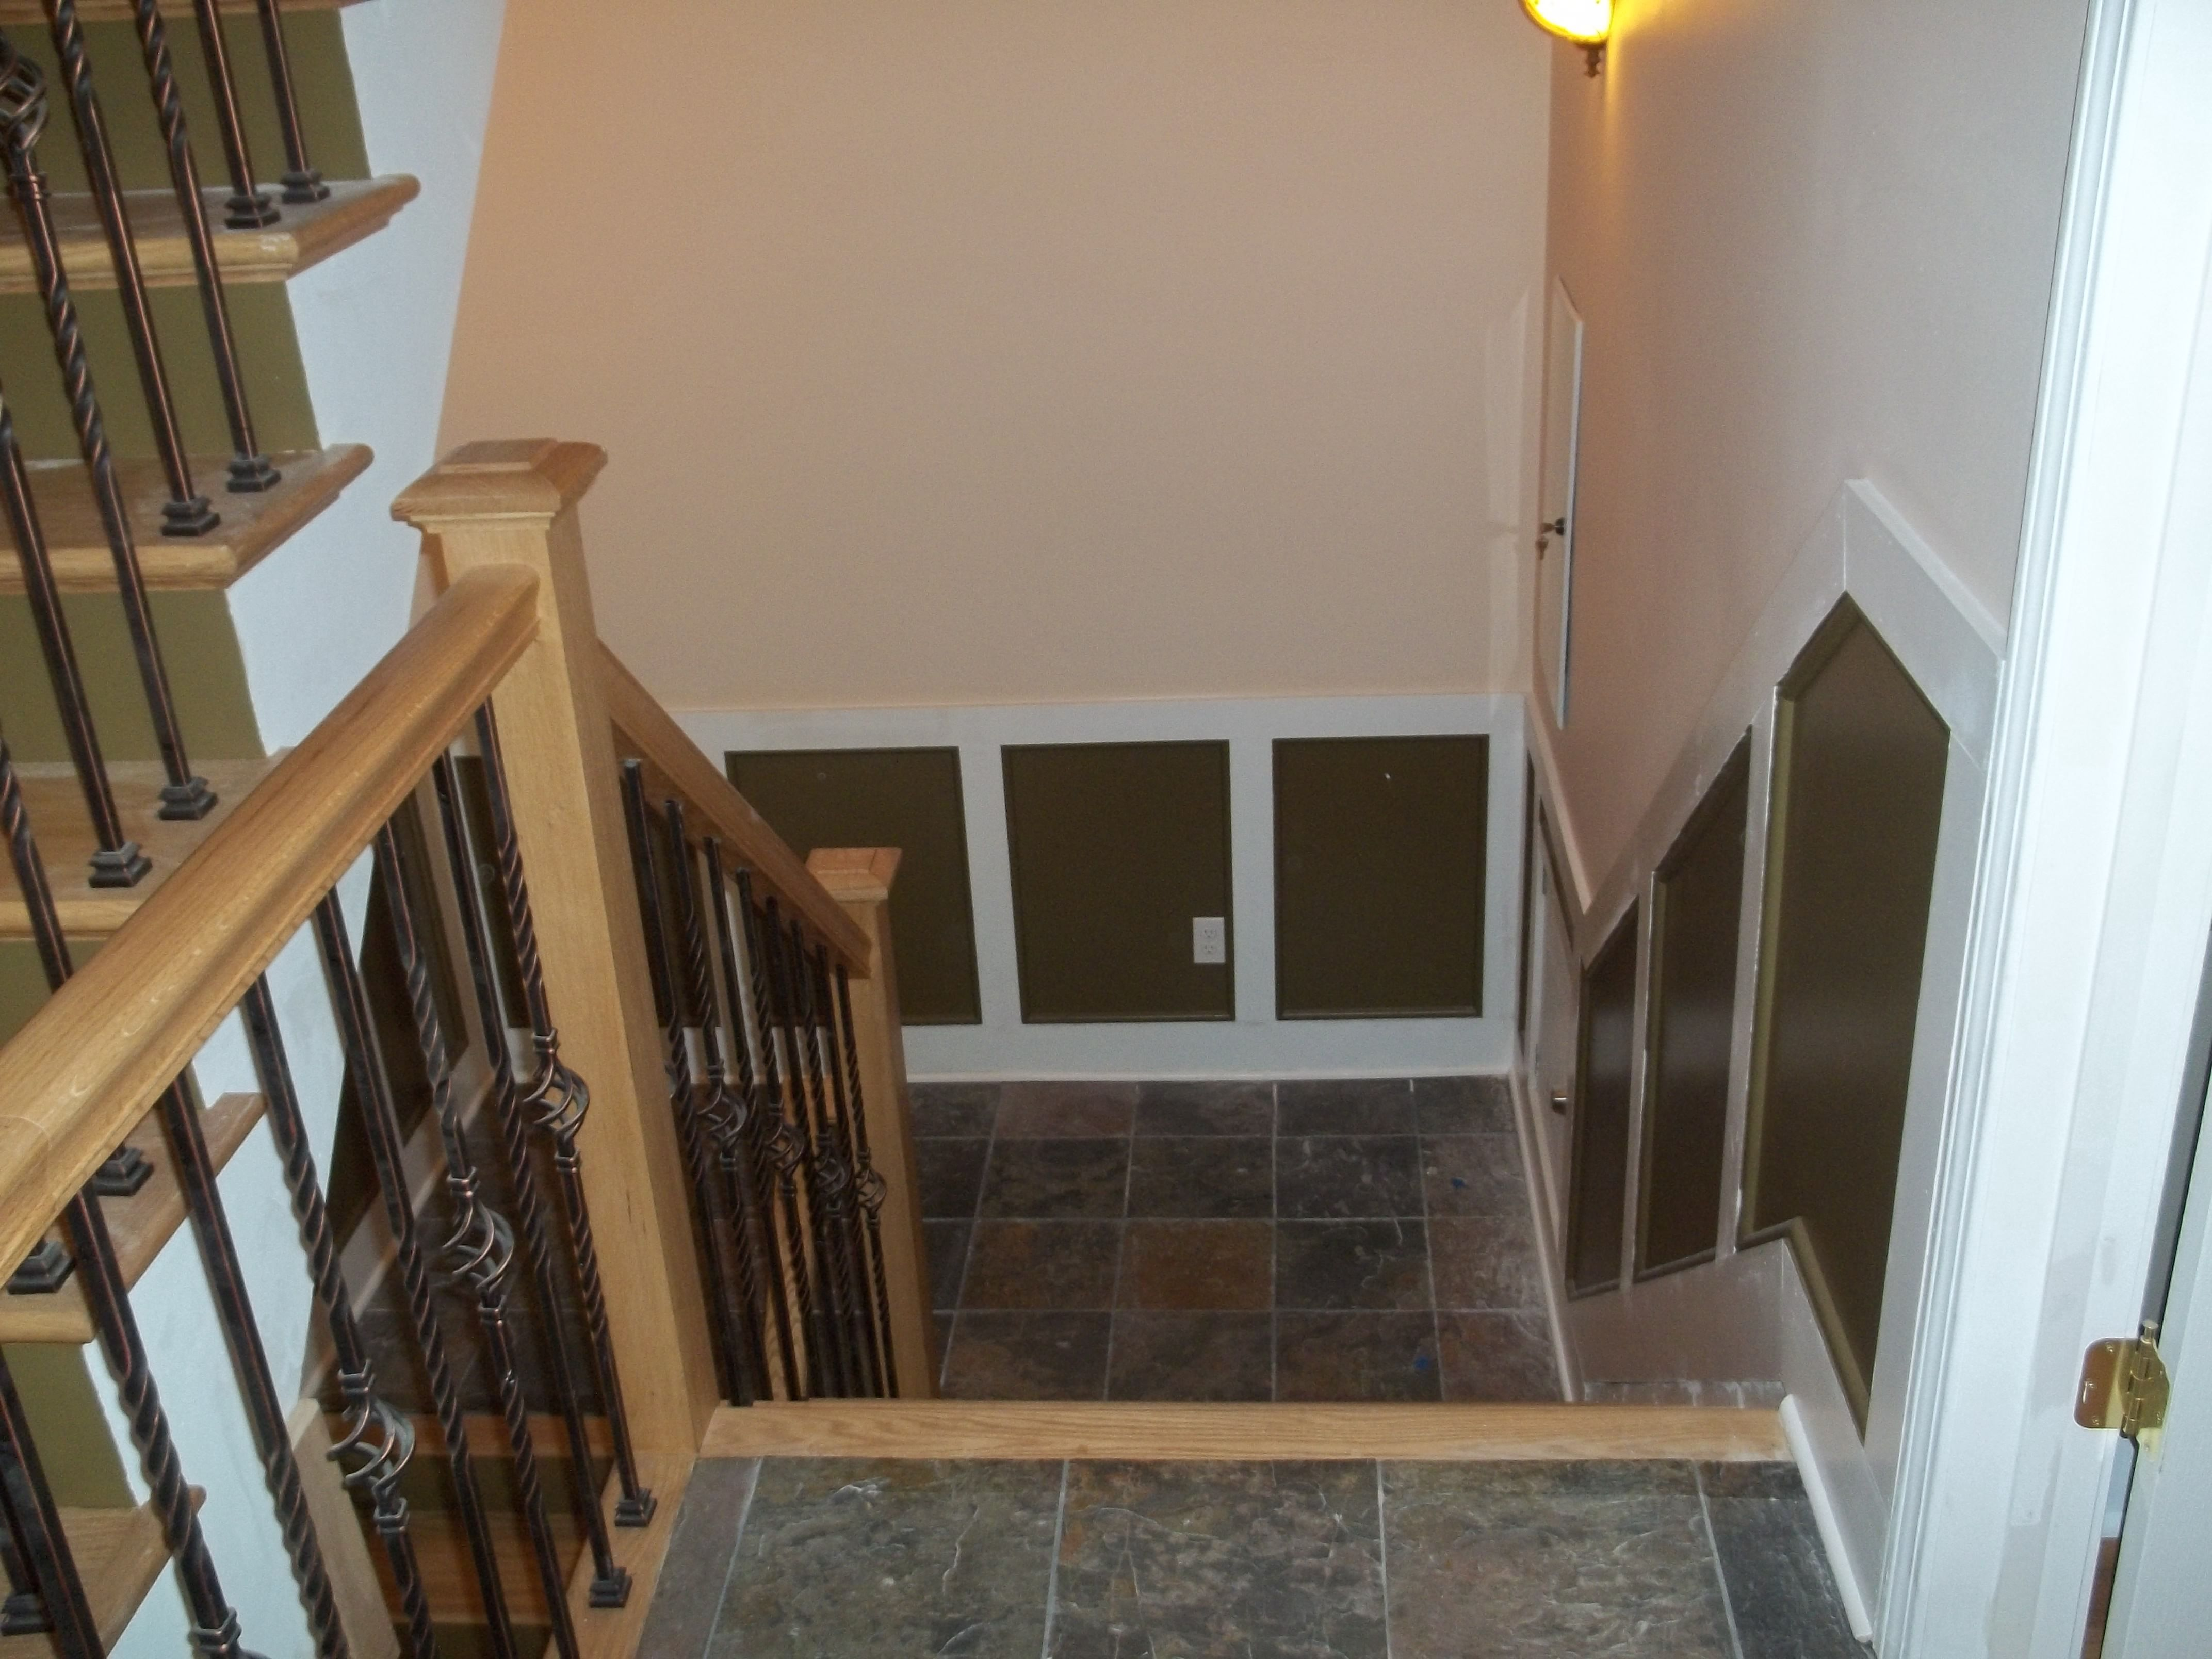 Catskill NY Custom Stair Painting. The Stair Stringers, Risers And Wall  Trim Have Been